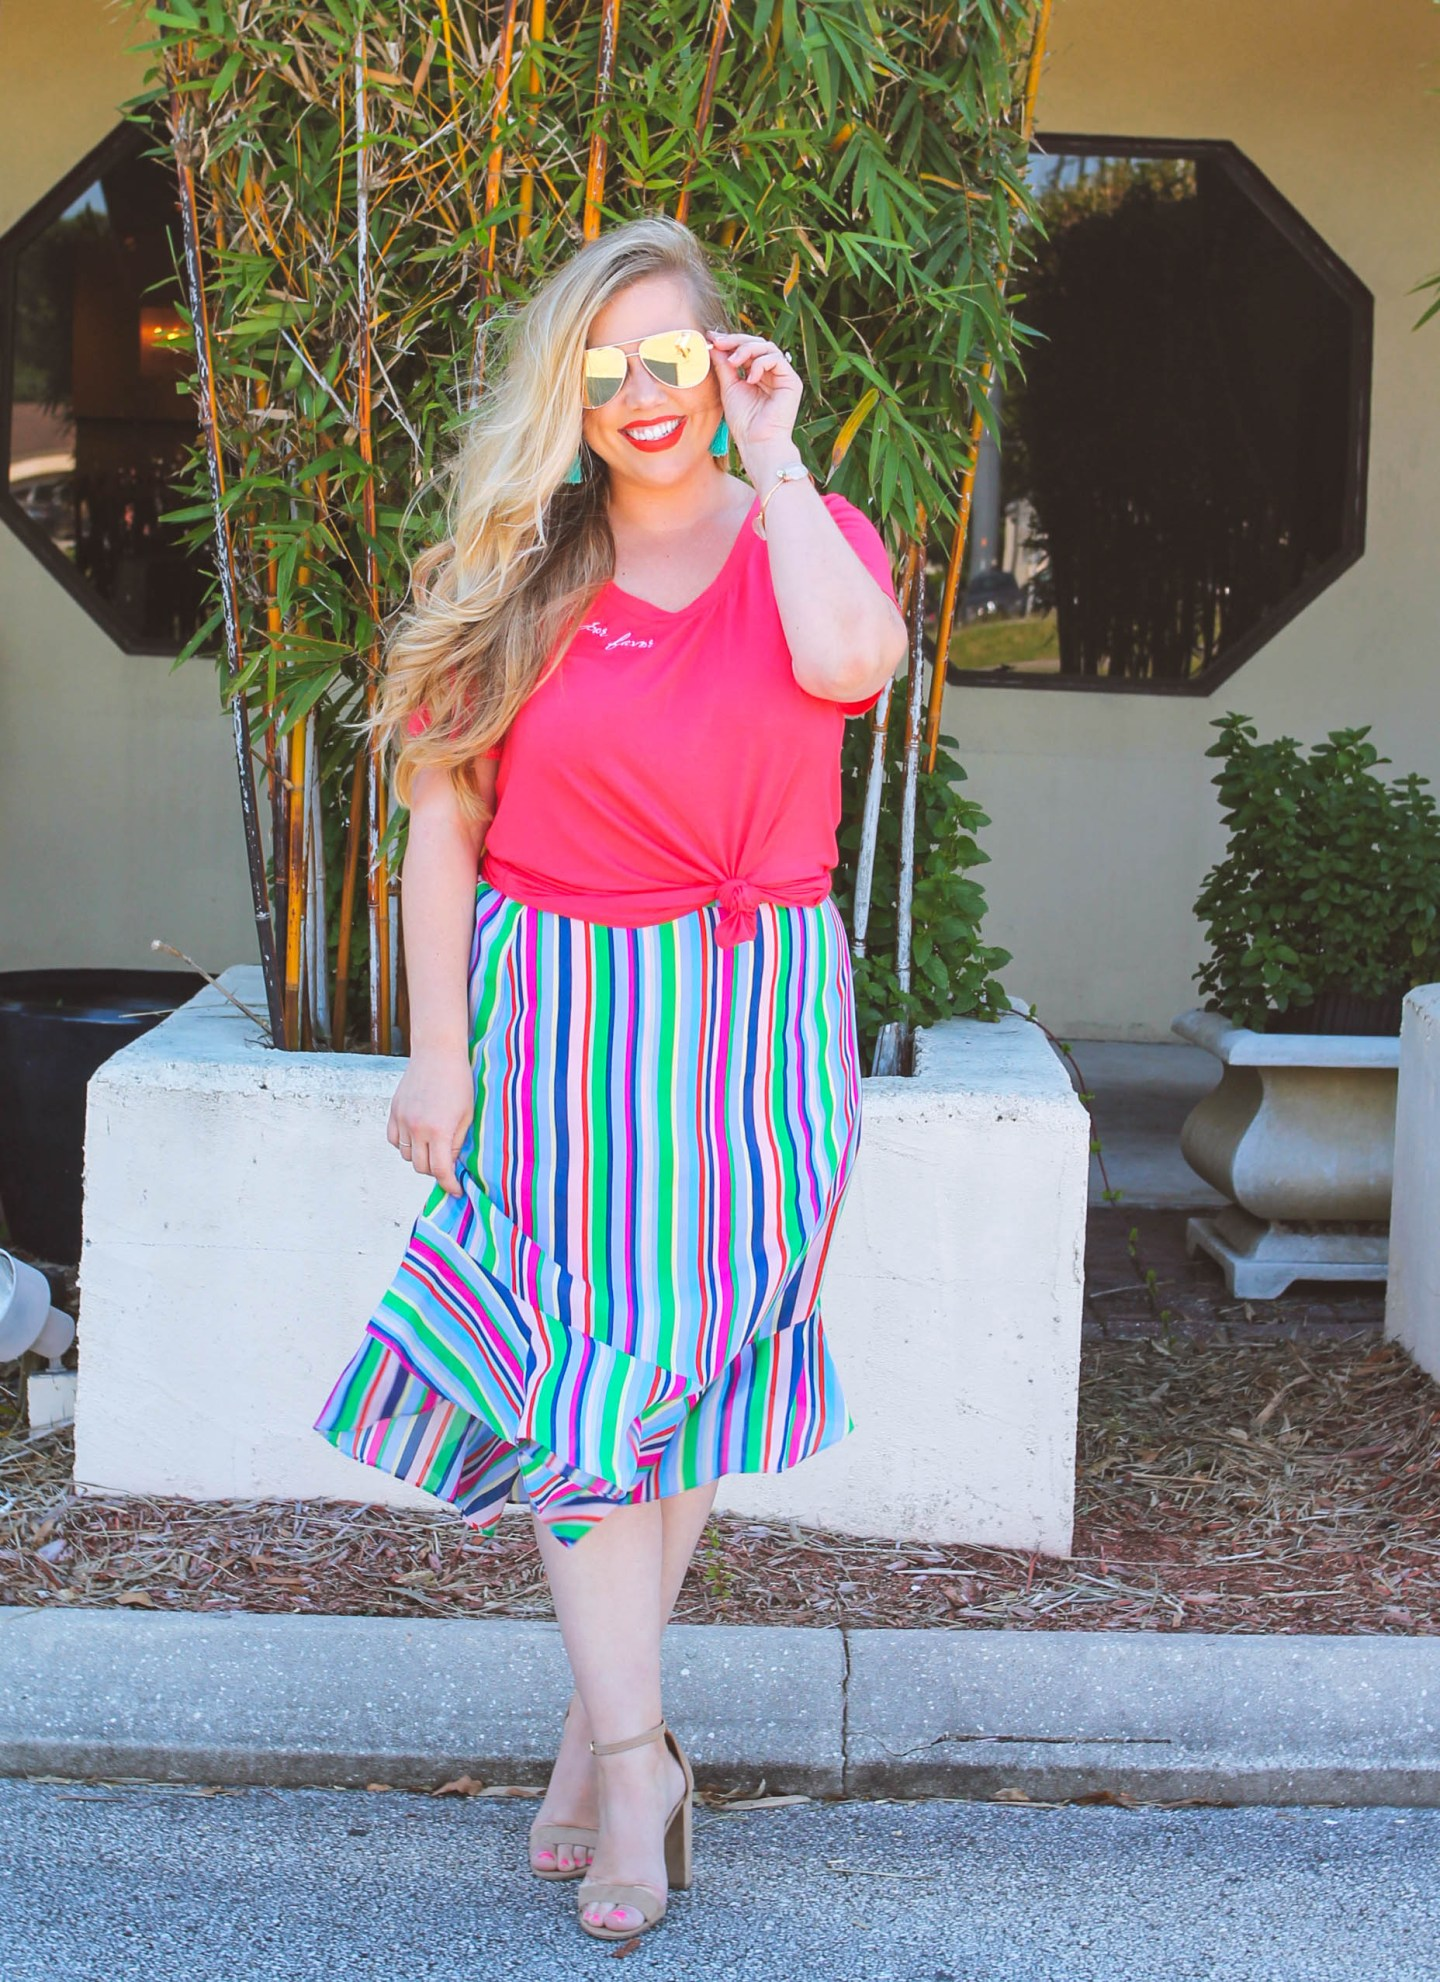 Stripes + Bright Colors